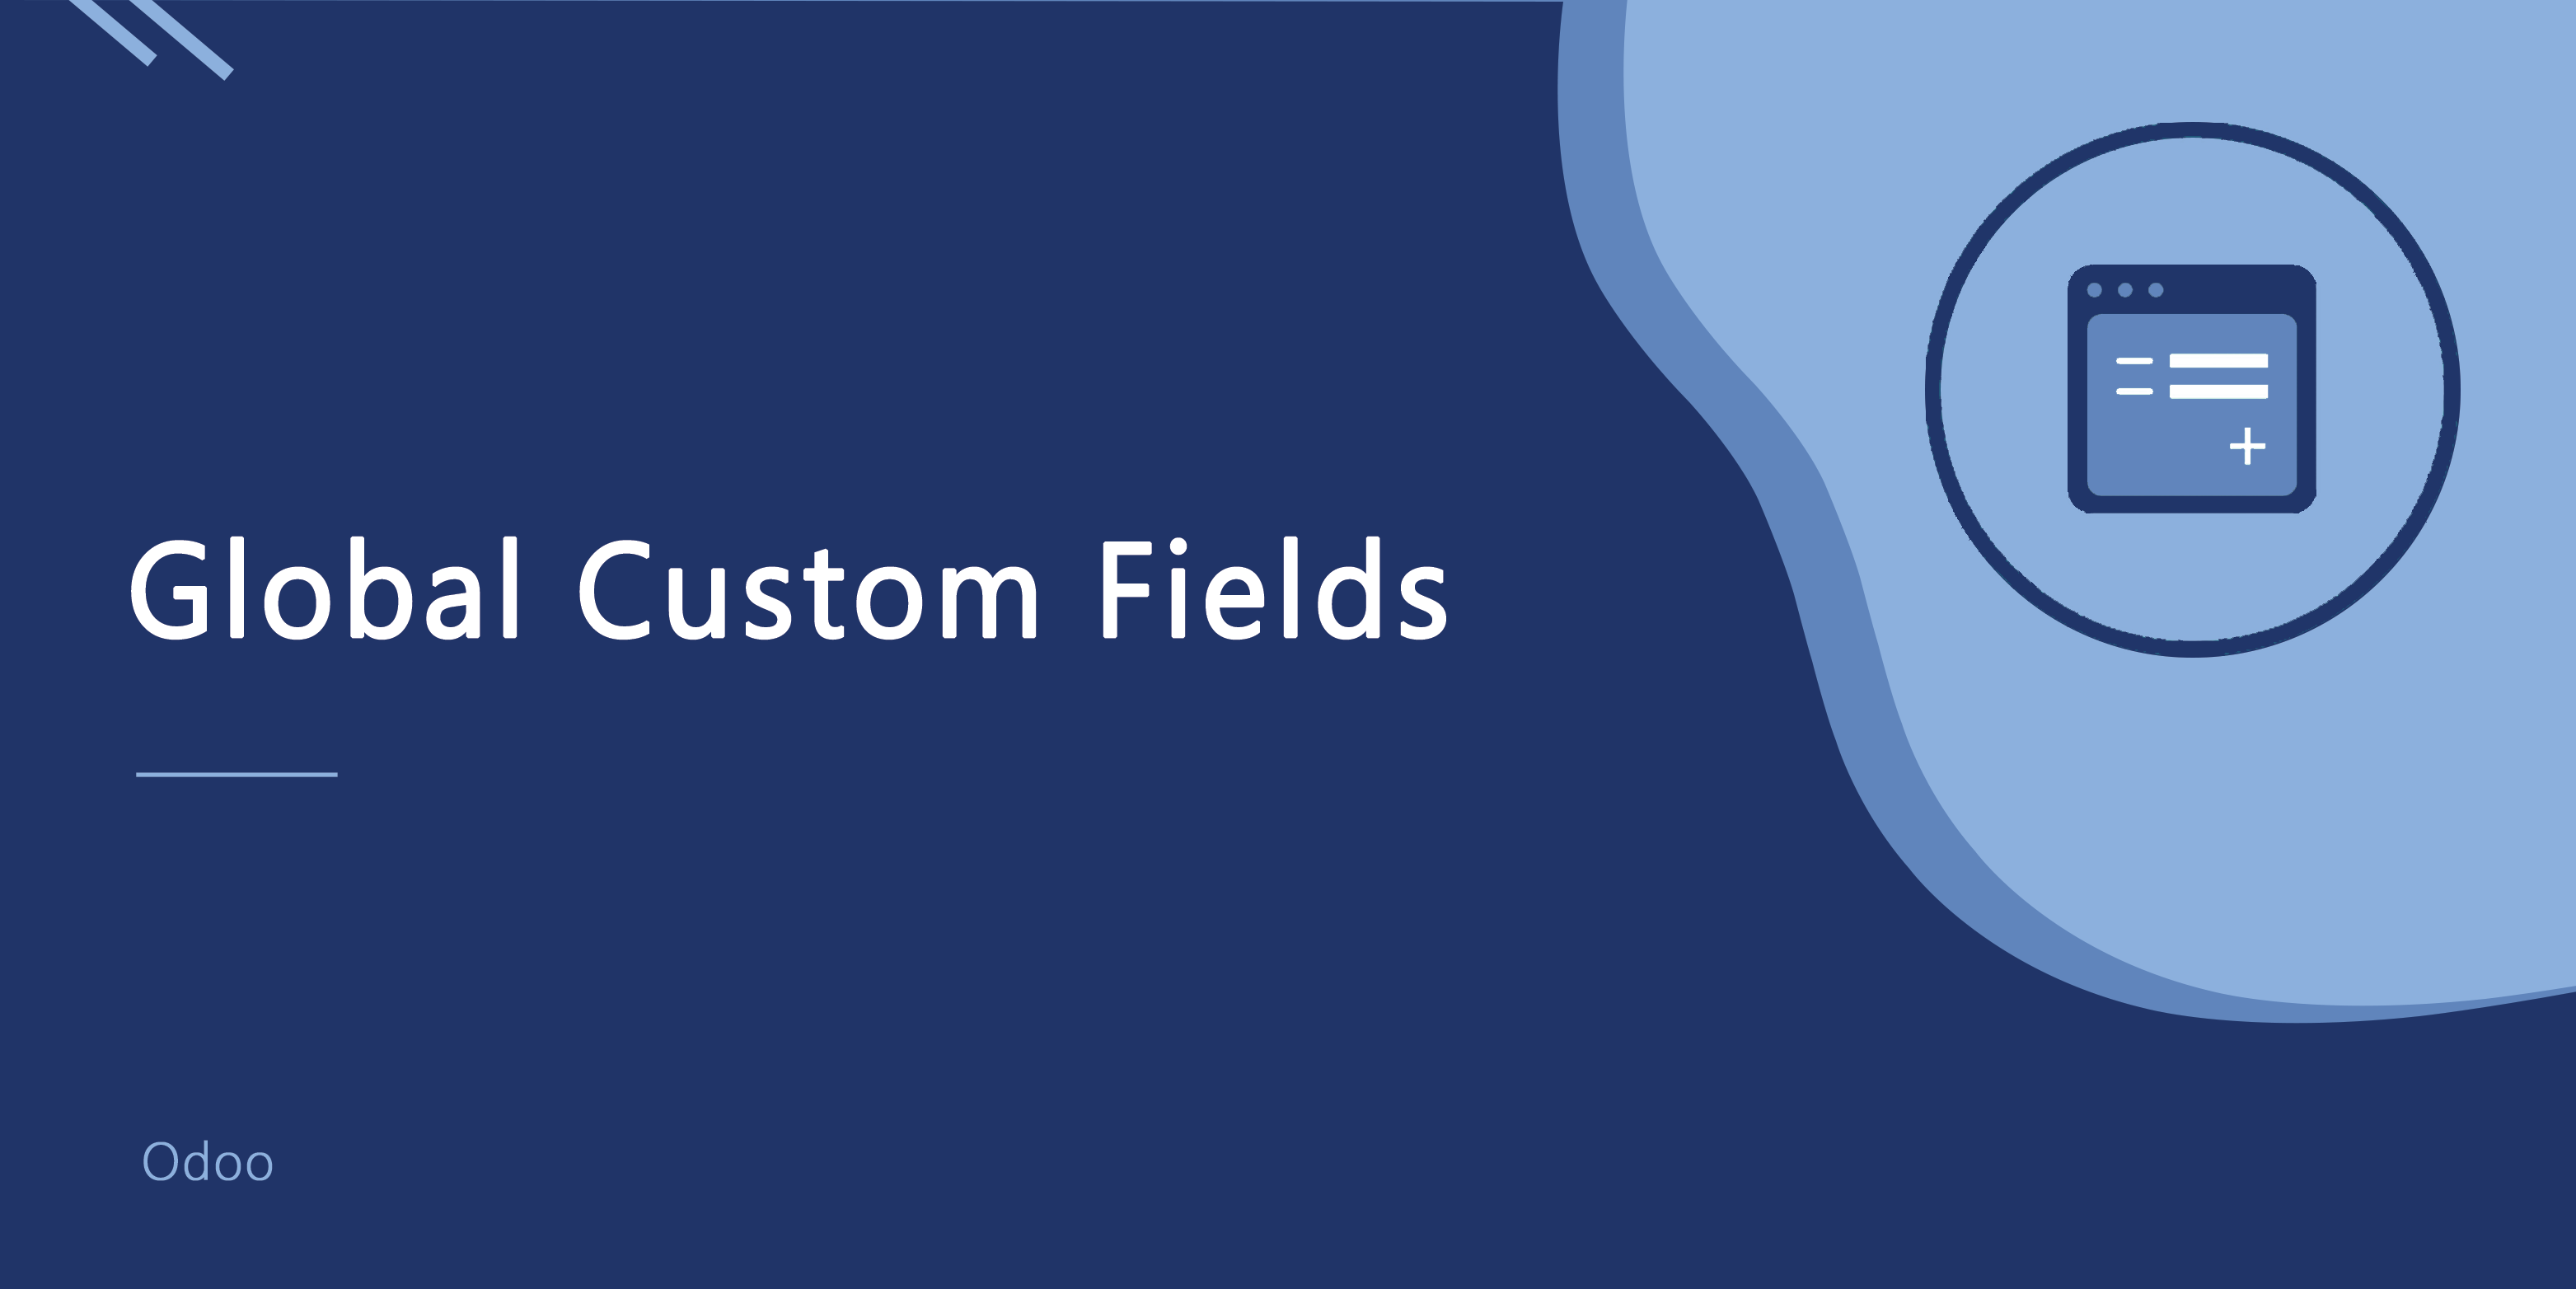 Global Custom Fields